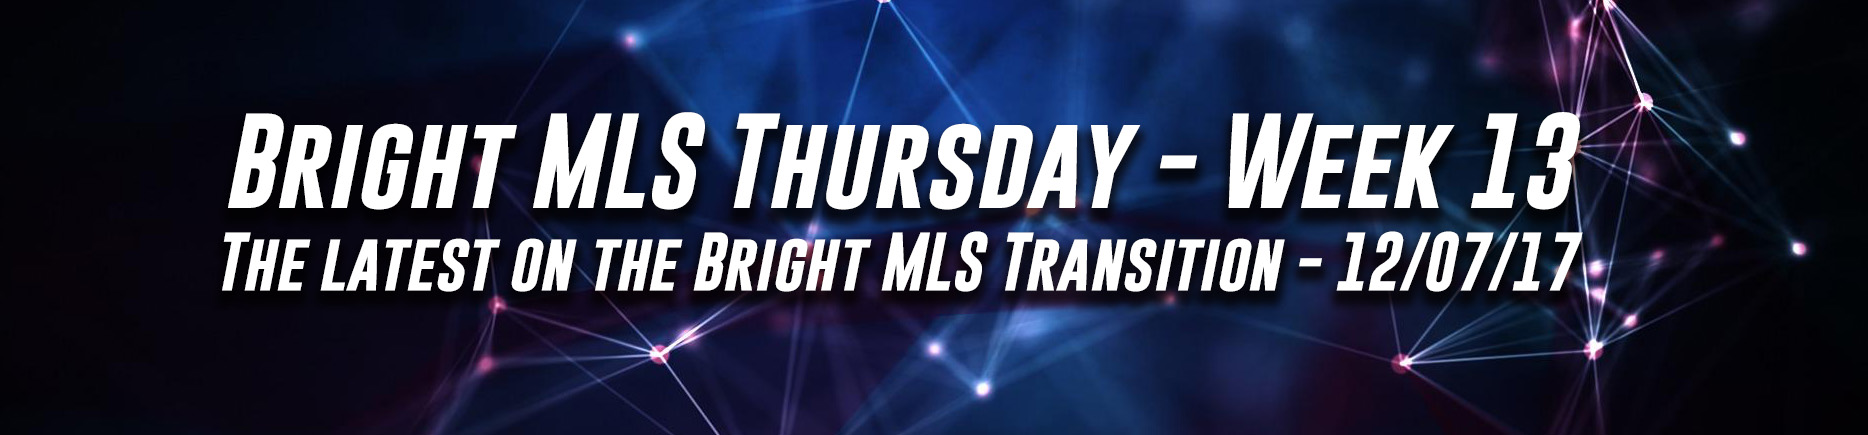 Bright MLS Thursday - Week 13